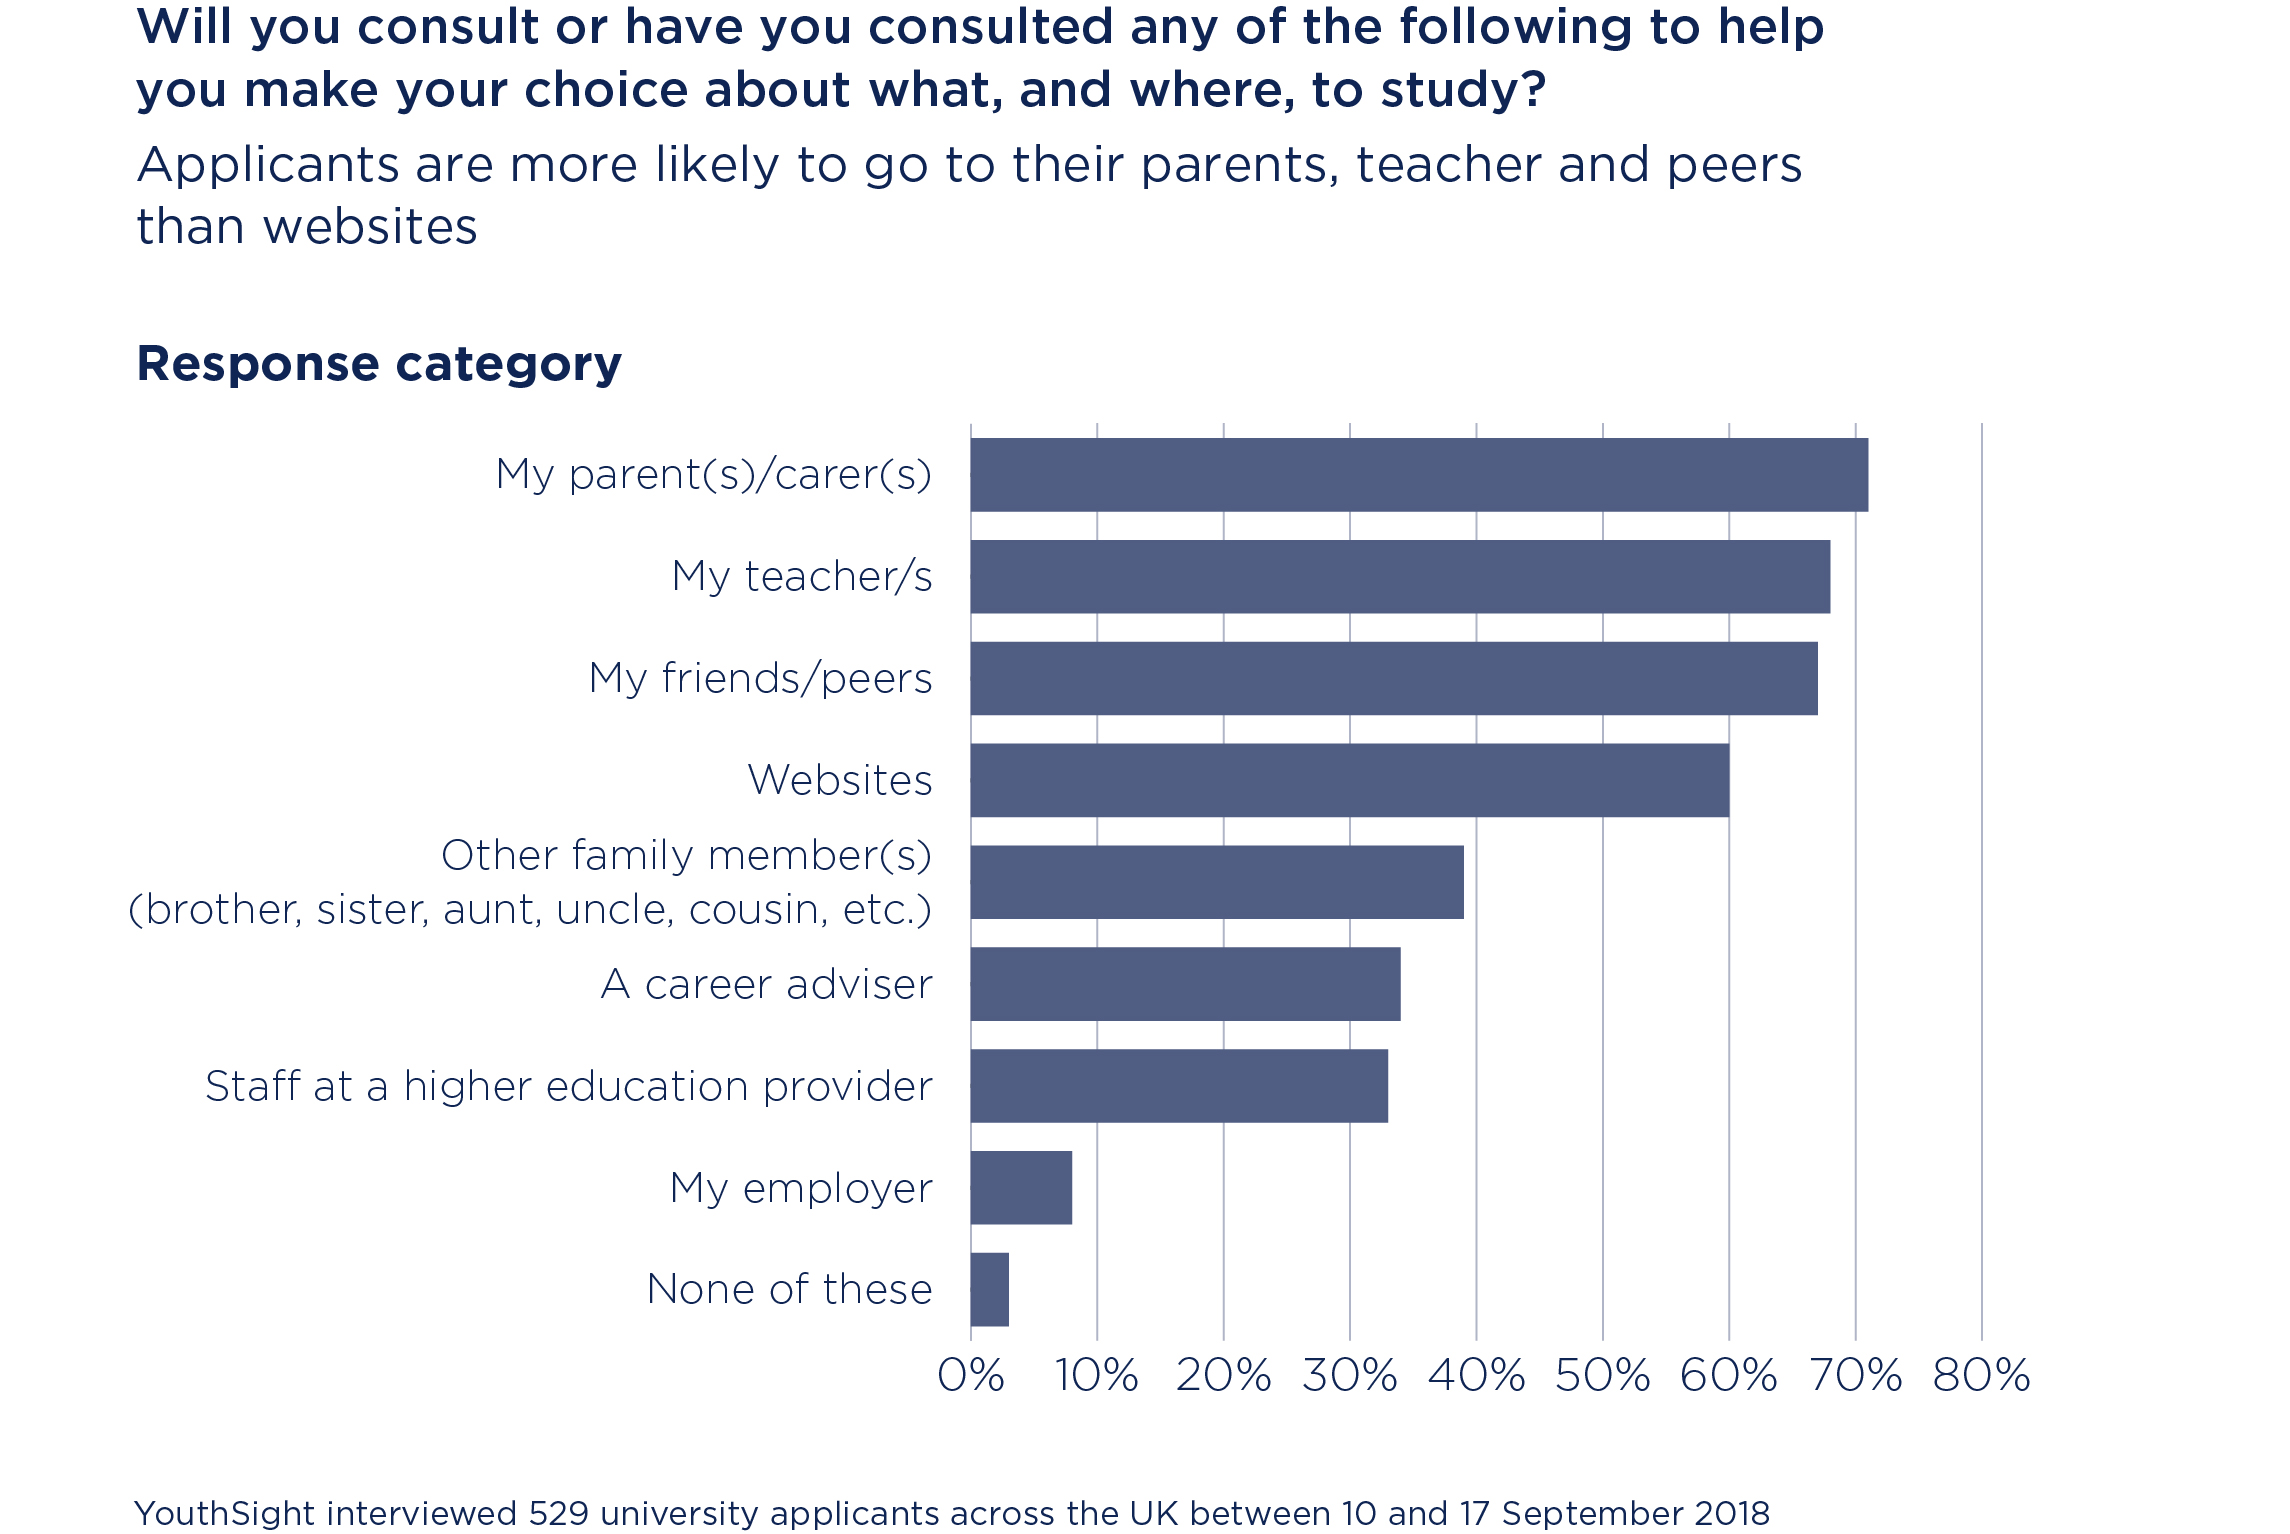 Chart showing which sources of information students and graduates are more likely to consult